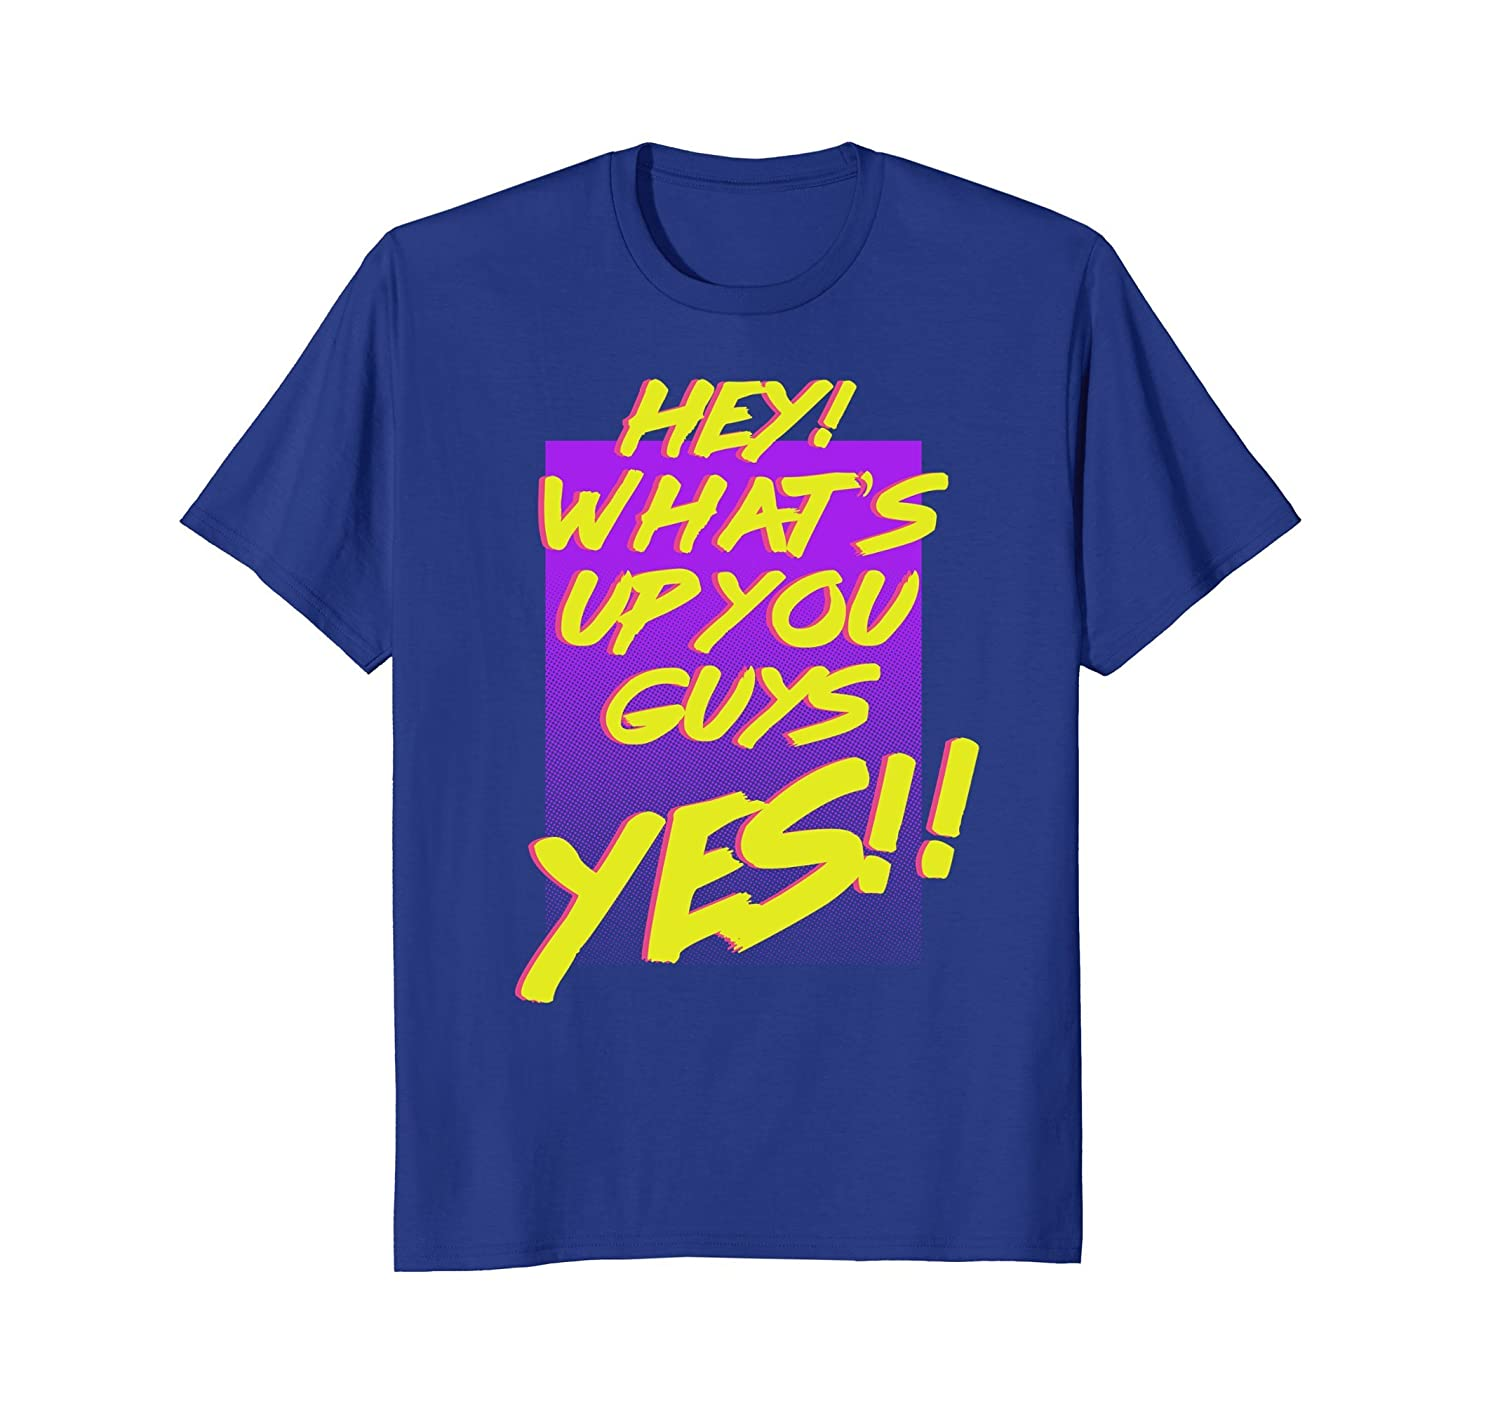 Shane Dawson Hey What's Up You Guys, Yes T-Shirt-Newstyleth